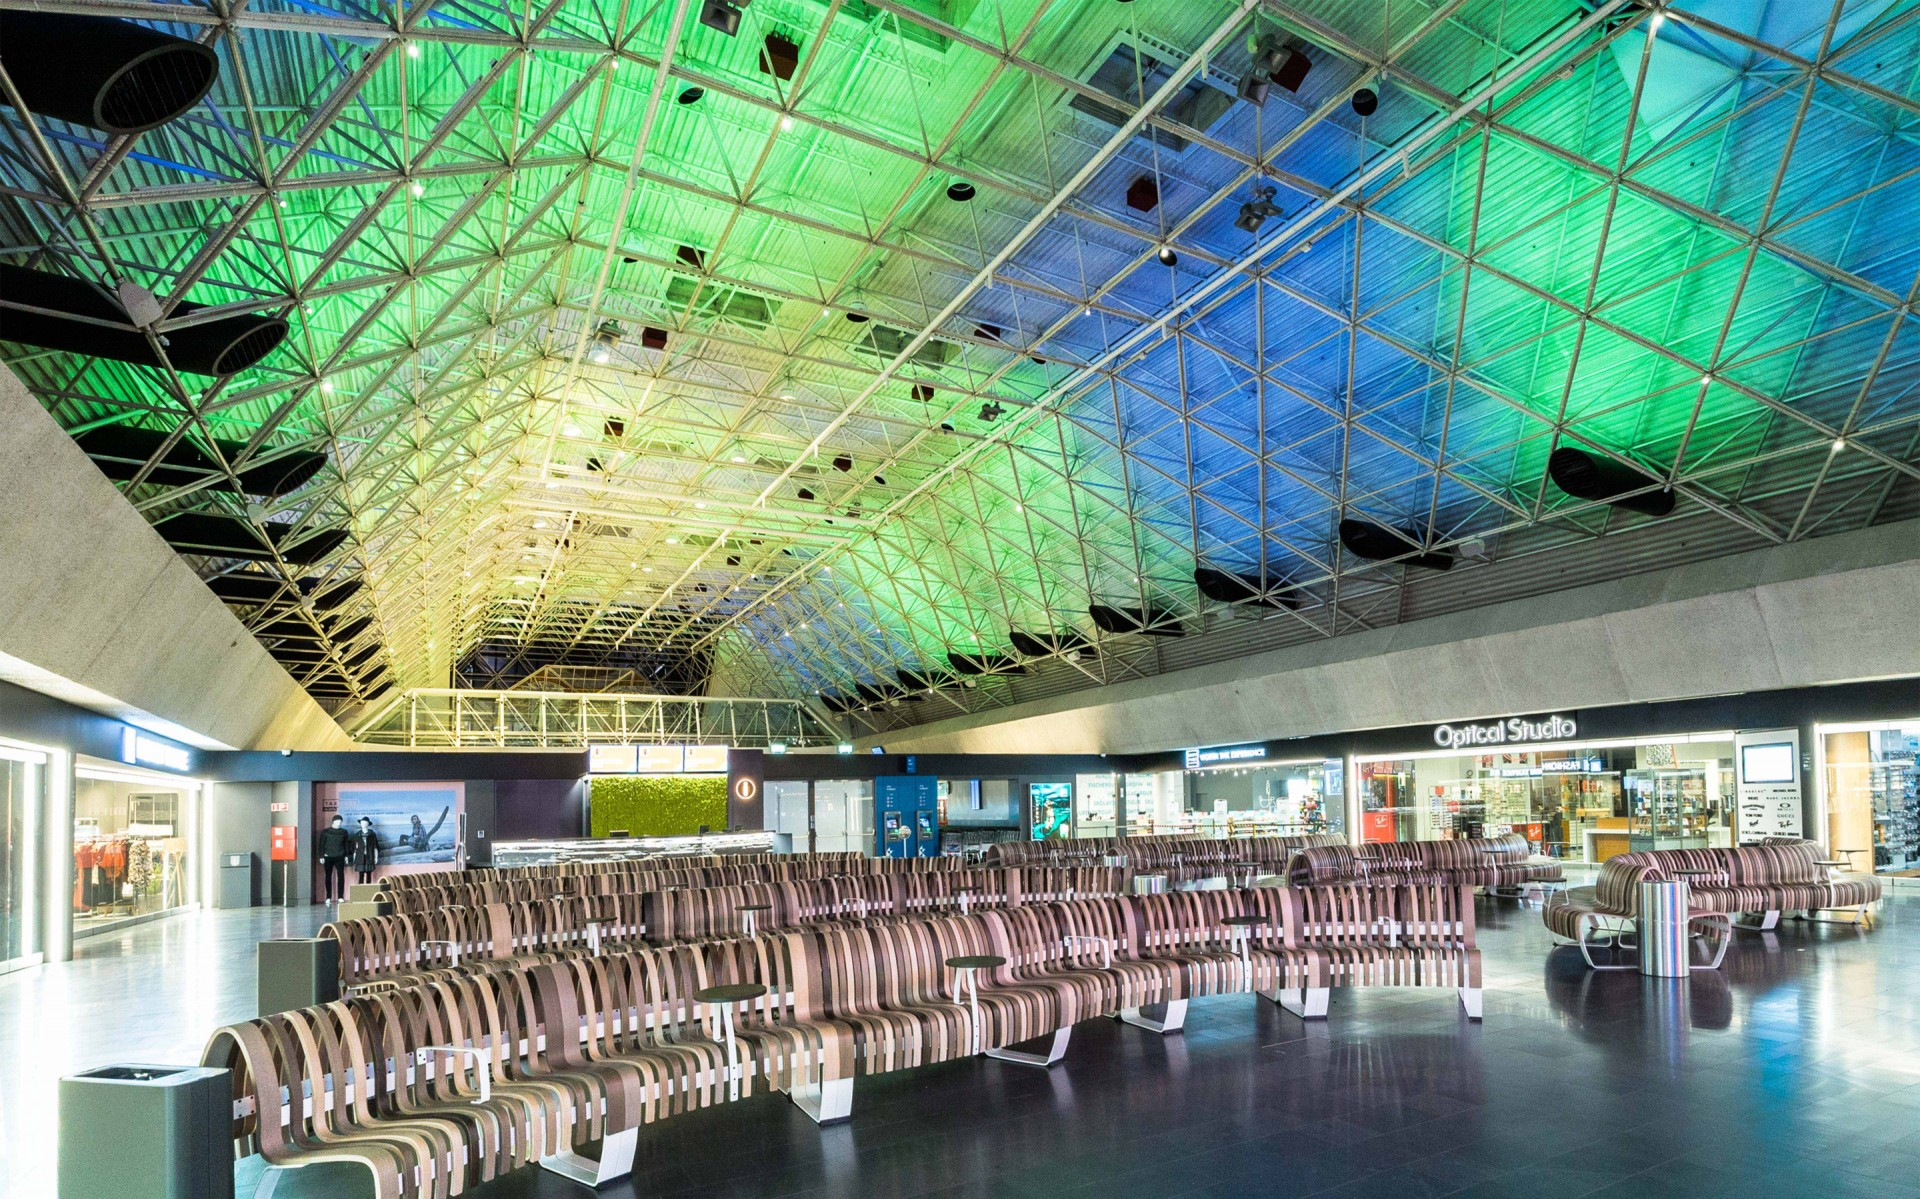 Keflavik Airport becomes a reflection of the country's natural environment.